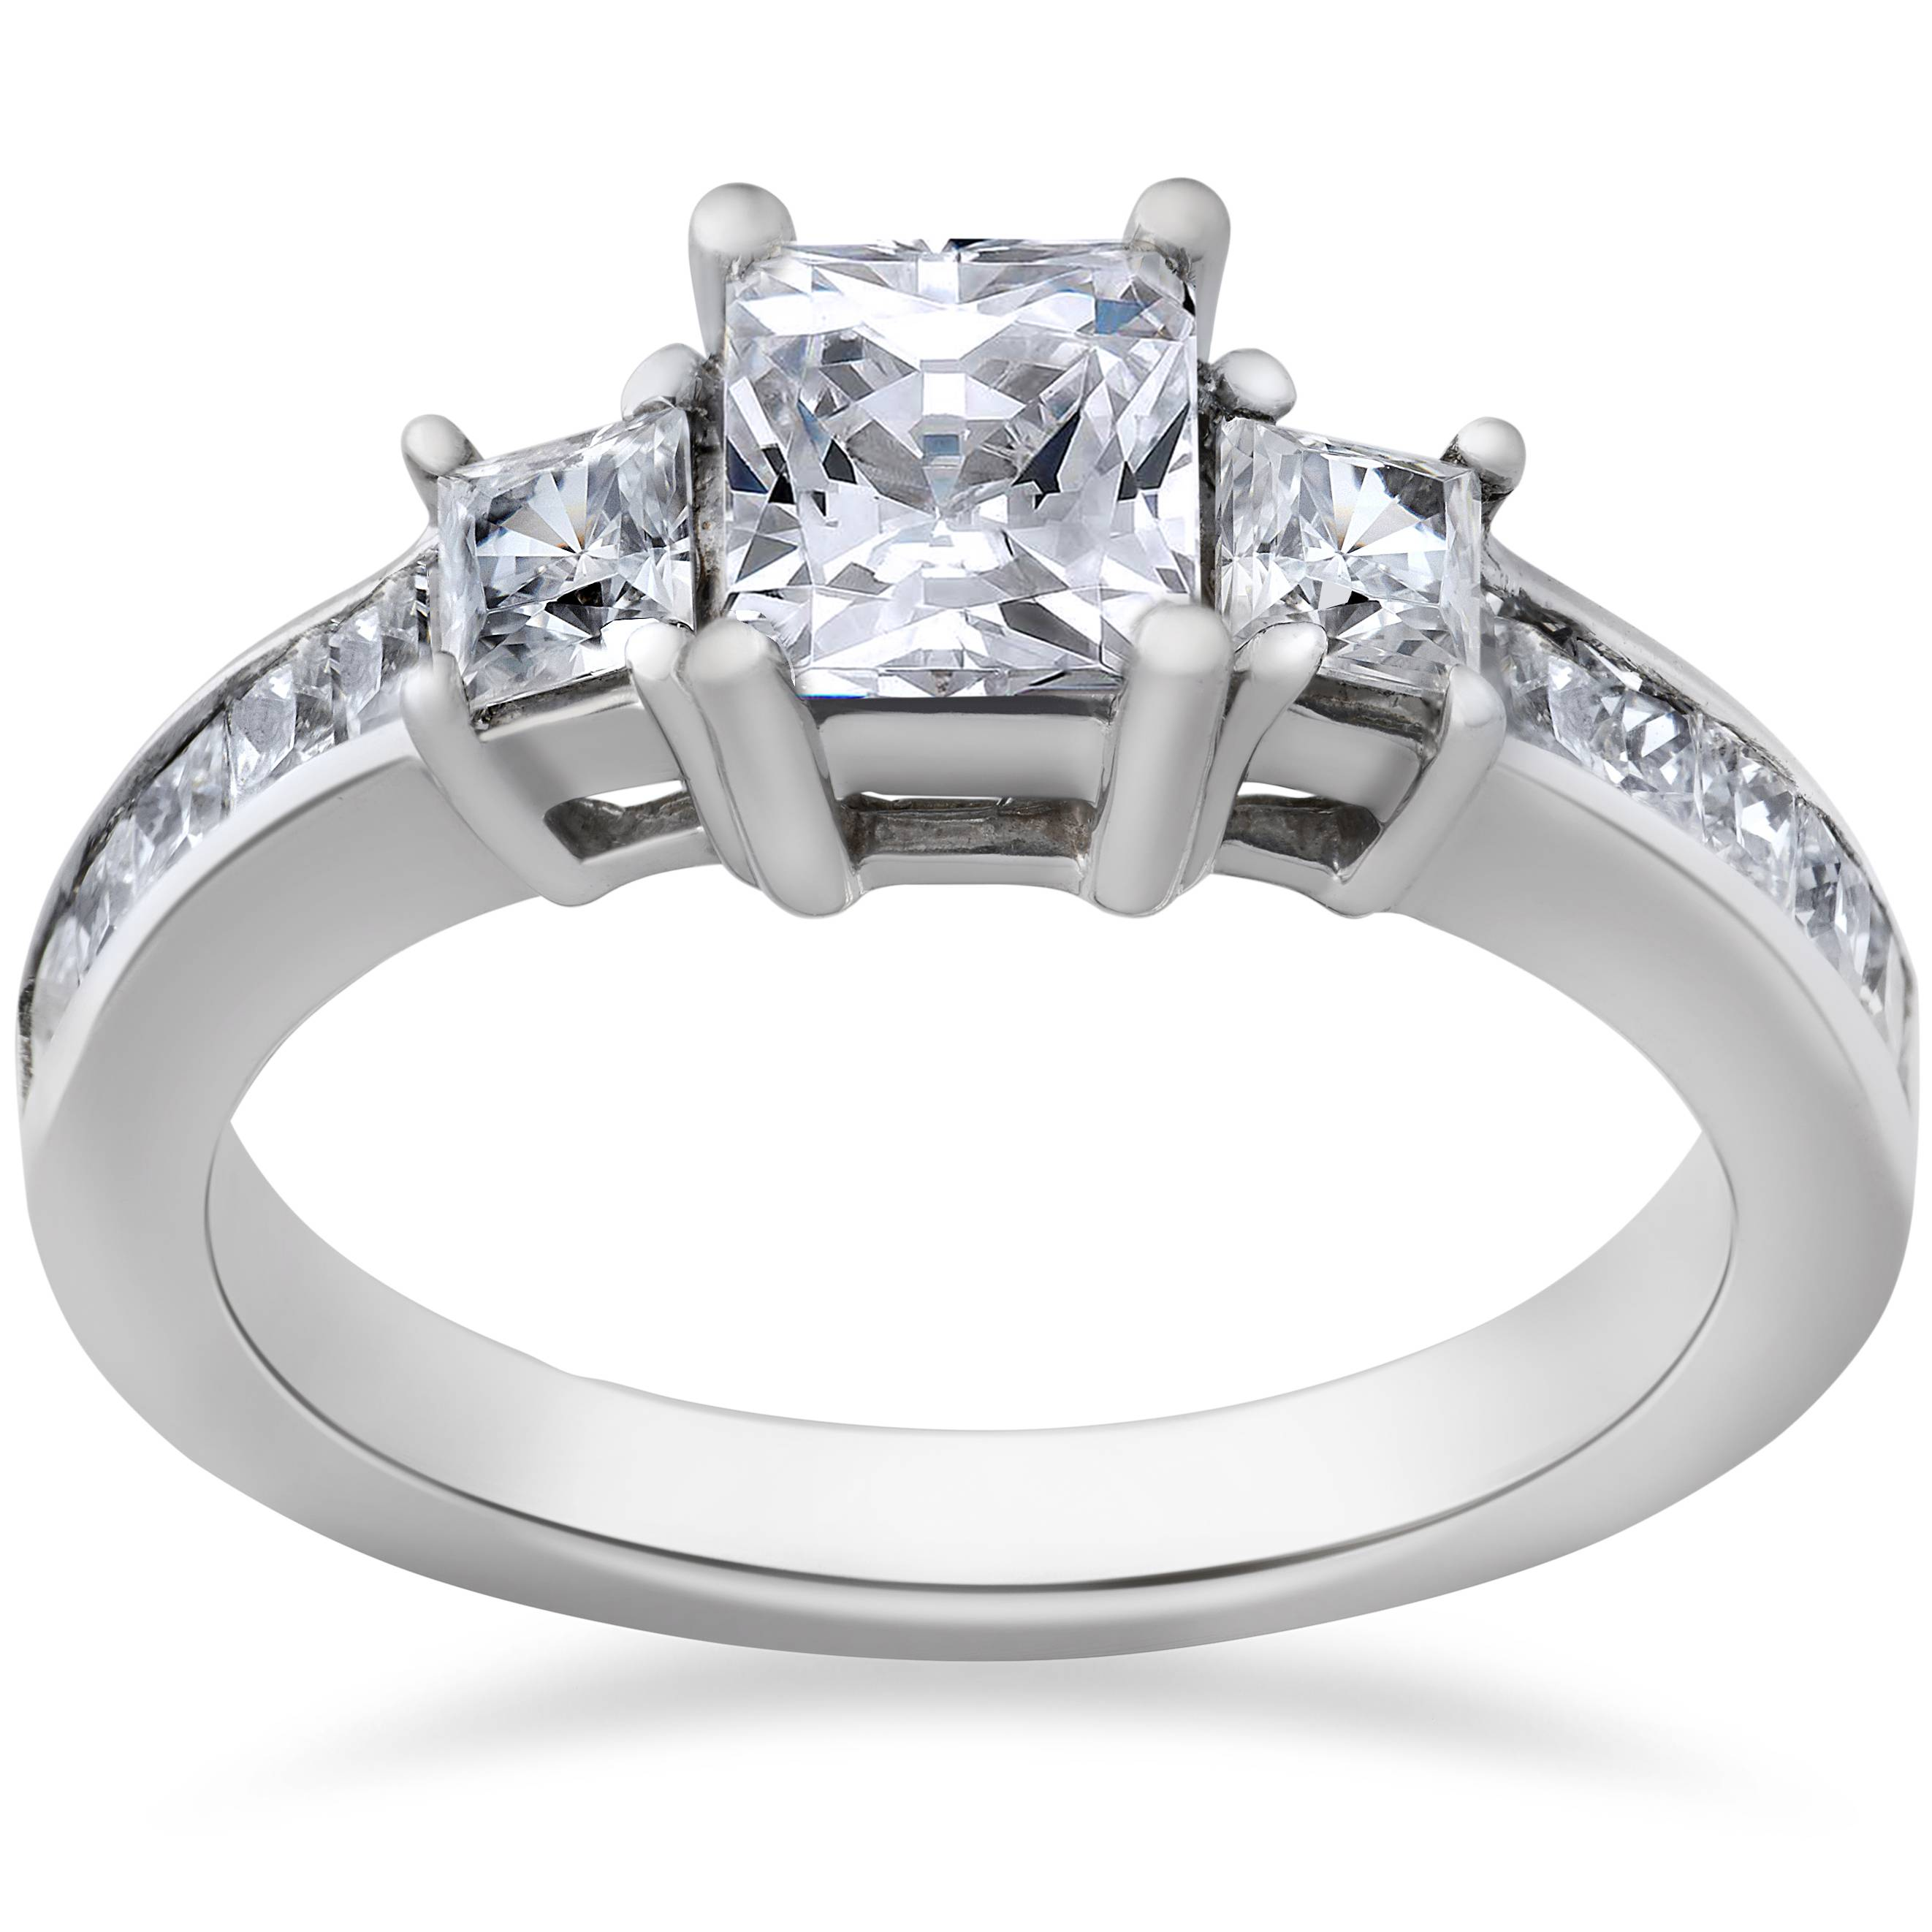 princess cut diamond engagement ring 3 stone 1 1 2ct 14k. Black Bedroom Furniture Sets. Home Design Ideas